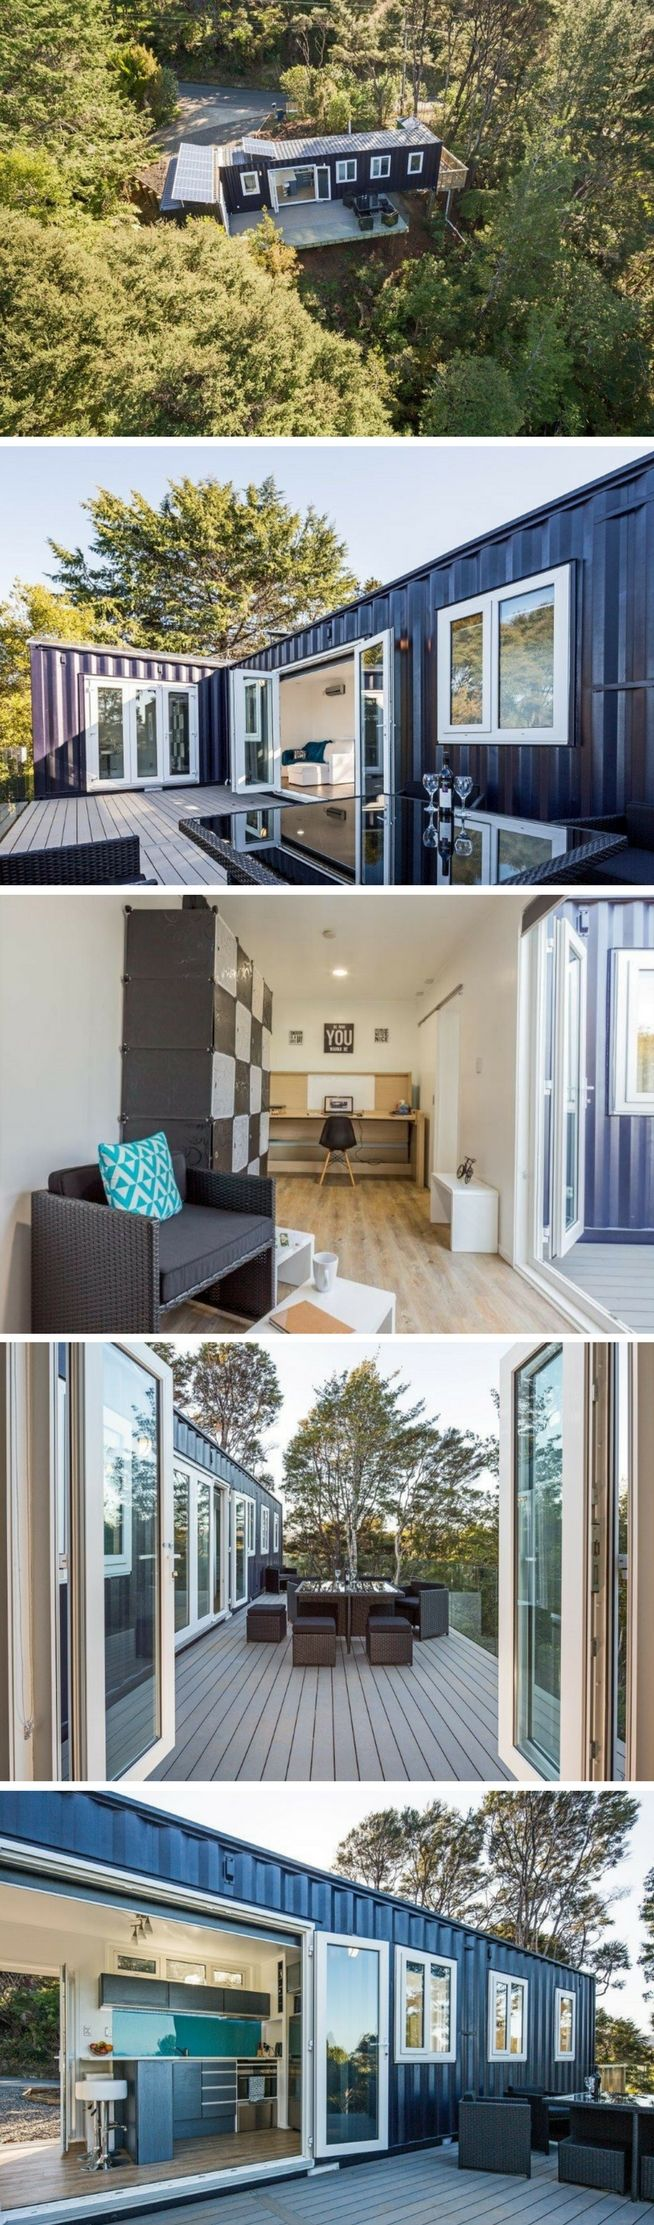 Container House - TEKAPO TINY SHIPPING CONTAINER HOME - Who Else Wants Simple Step-By-Step Plans To Design And Build A Container Home From Scratch?